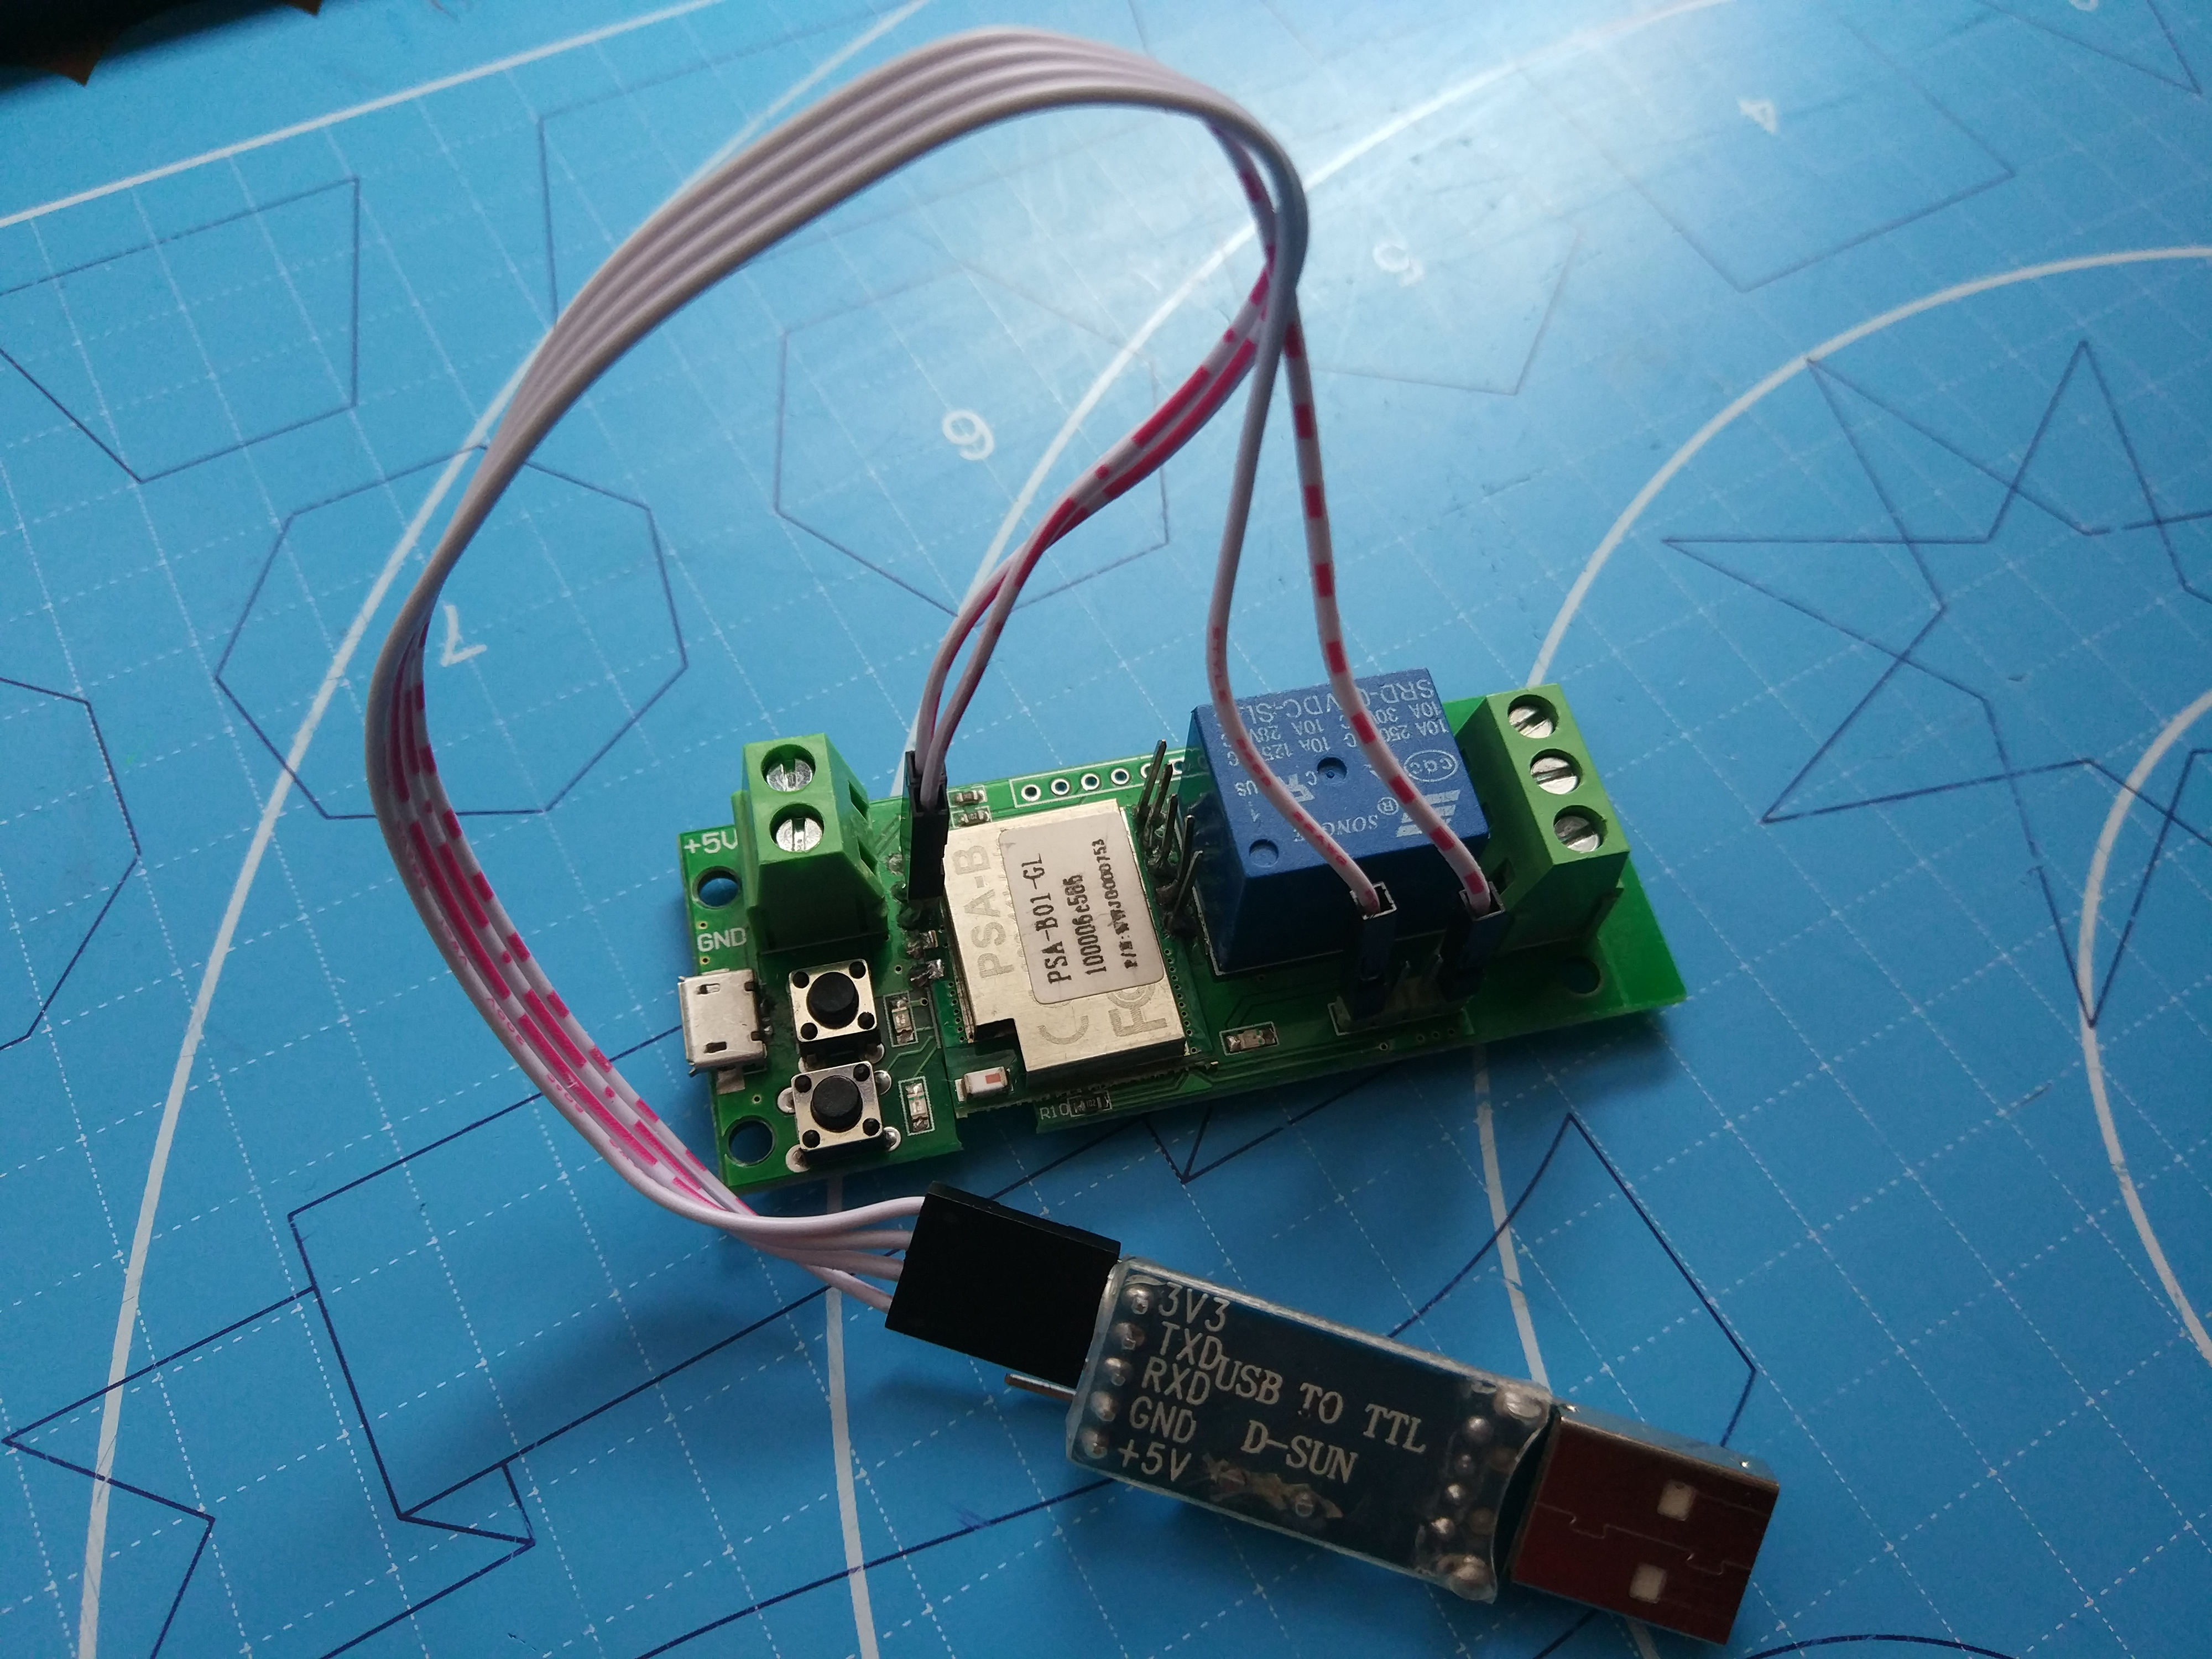 DIY Virtual Alike NEST Thermostat with Node-RED - Hackster.io